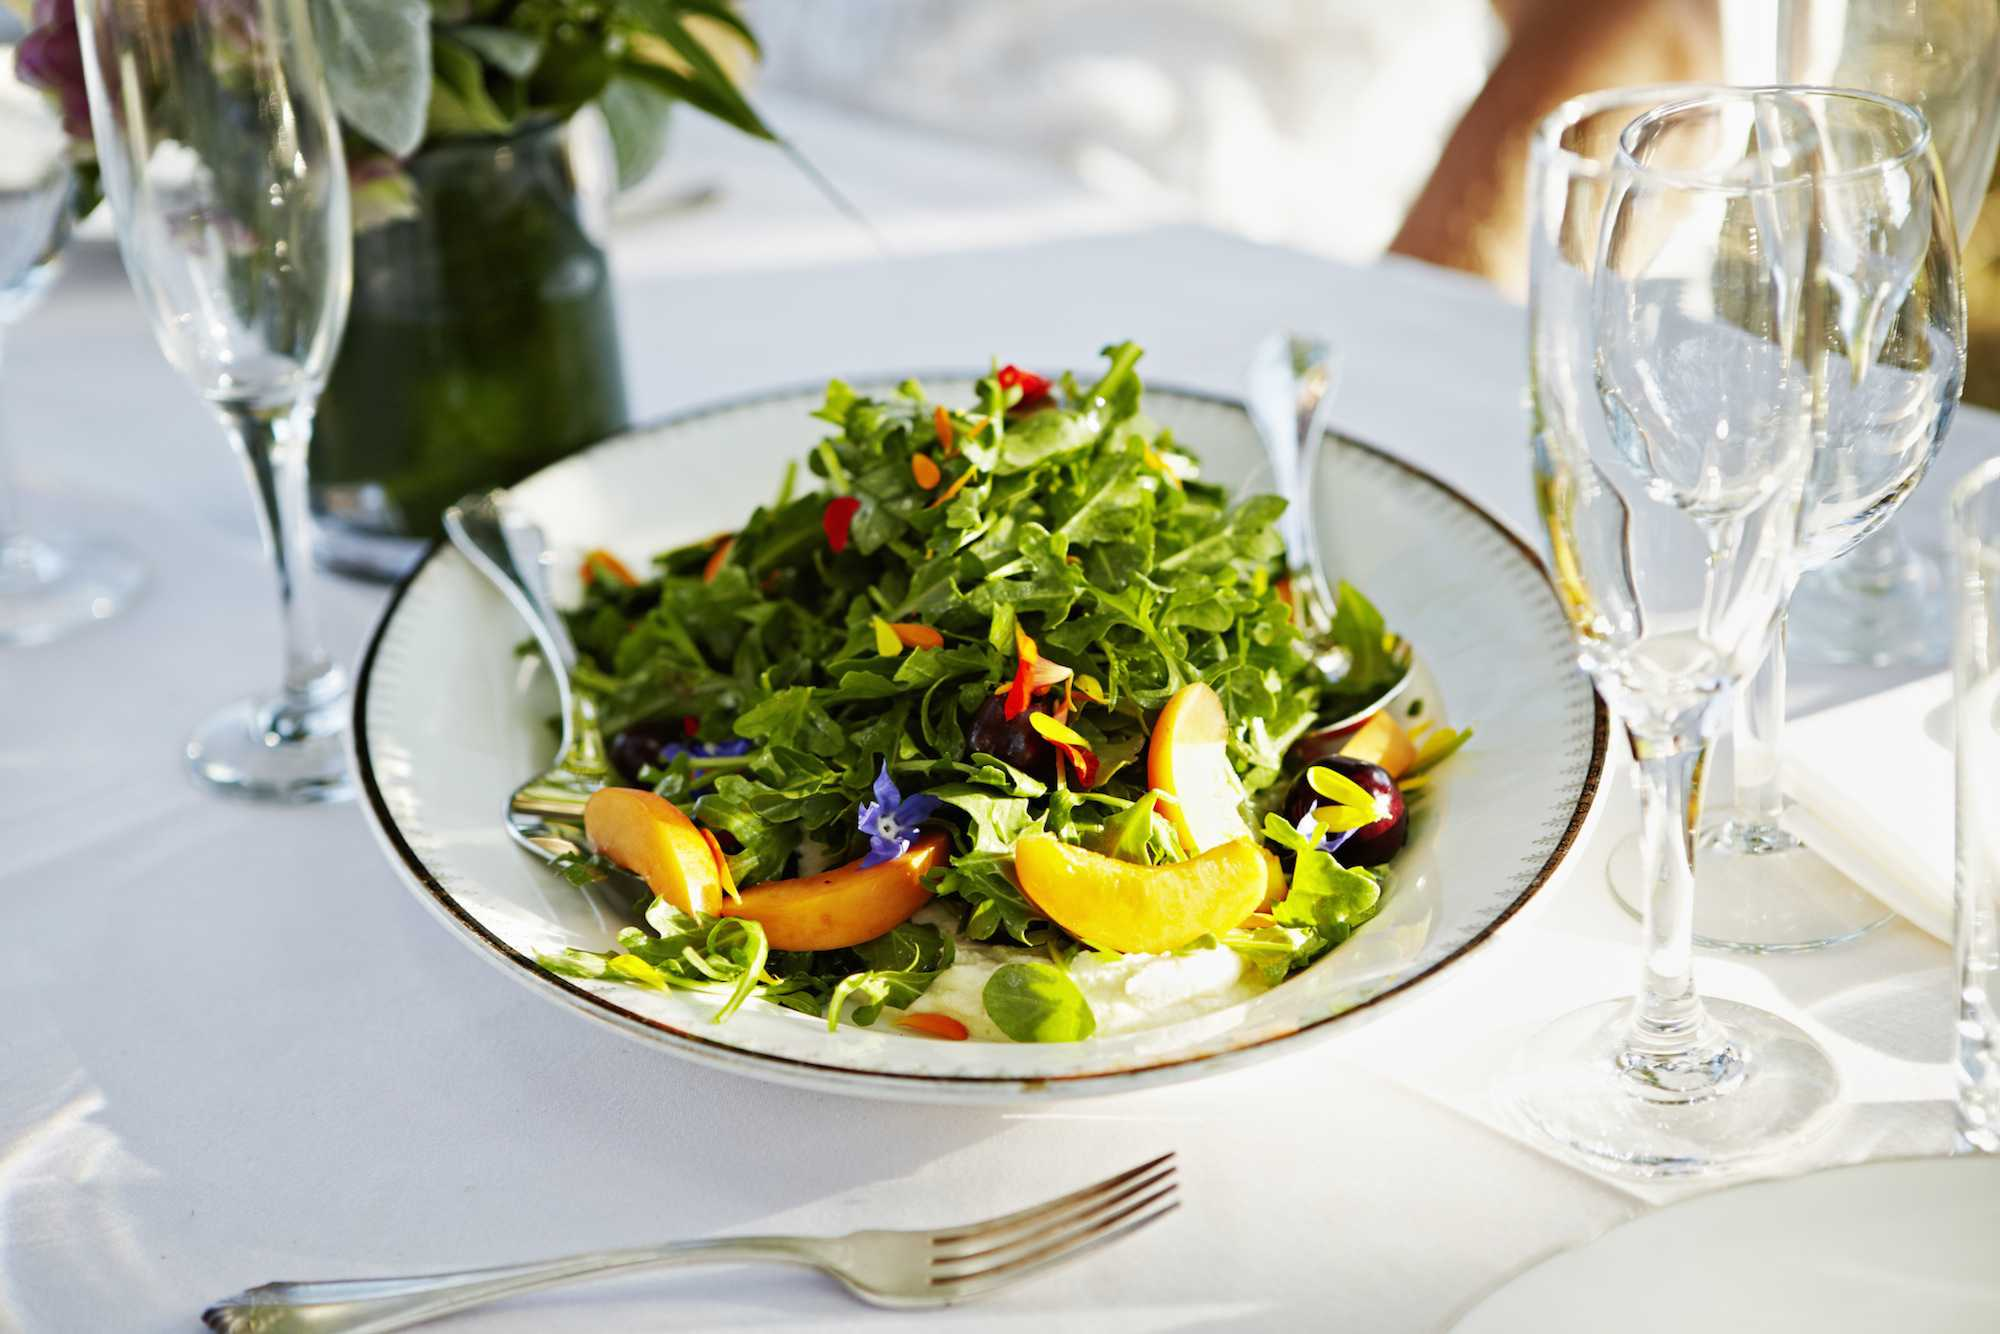 Plate of salad on outdoor banquet table